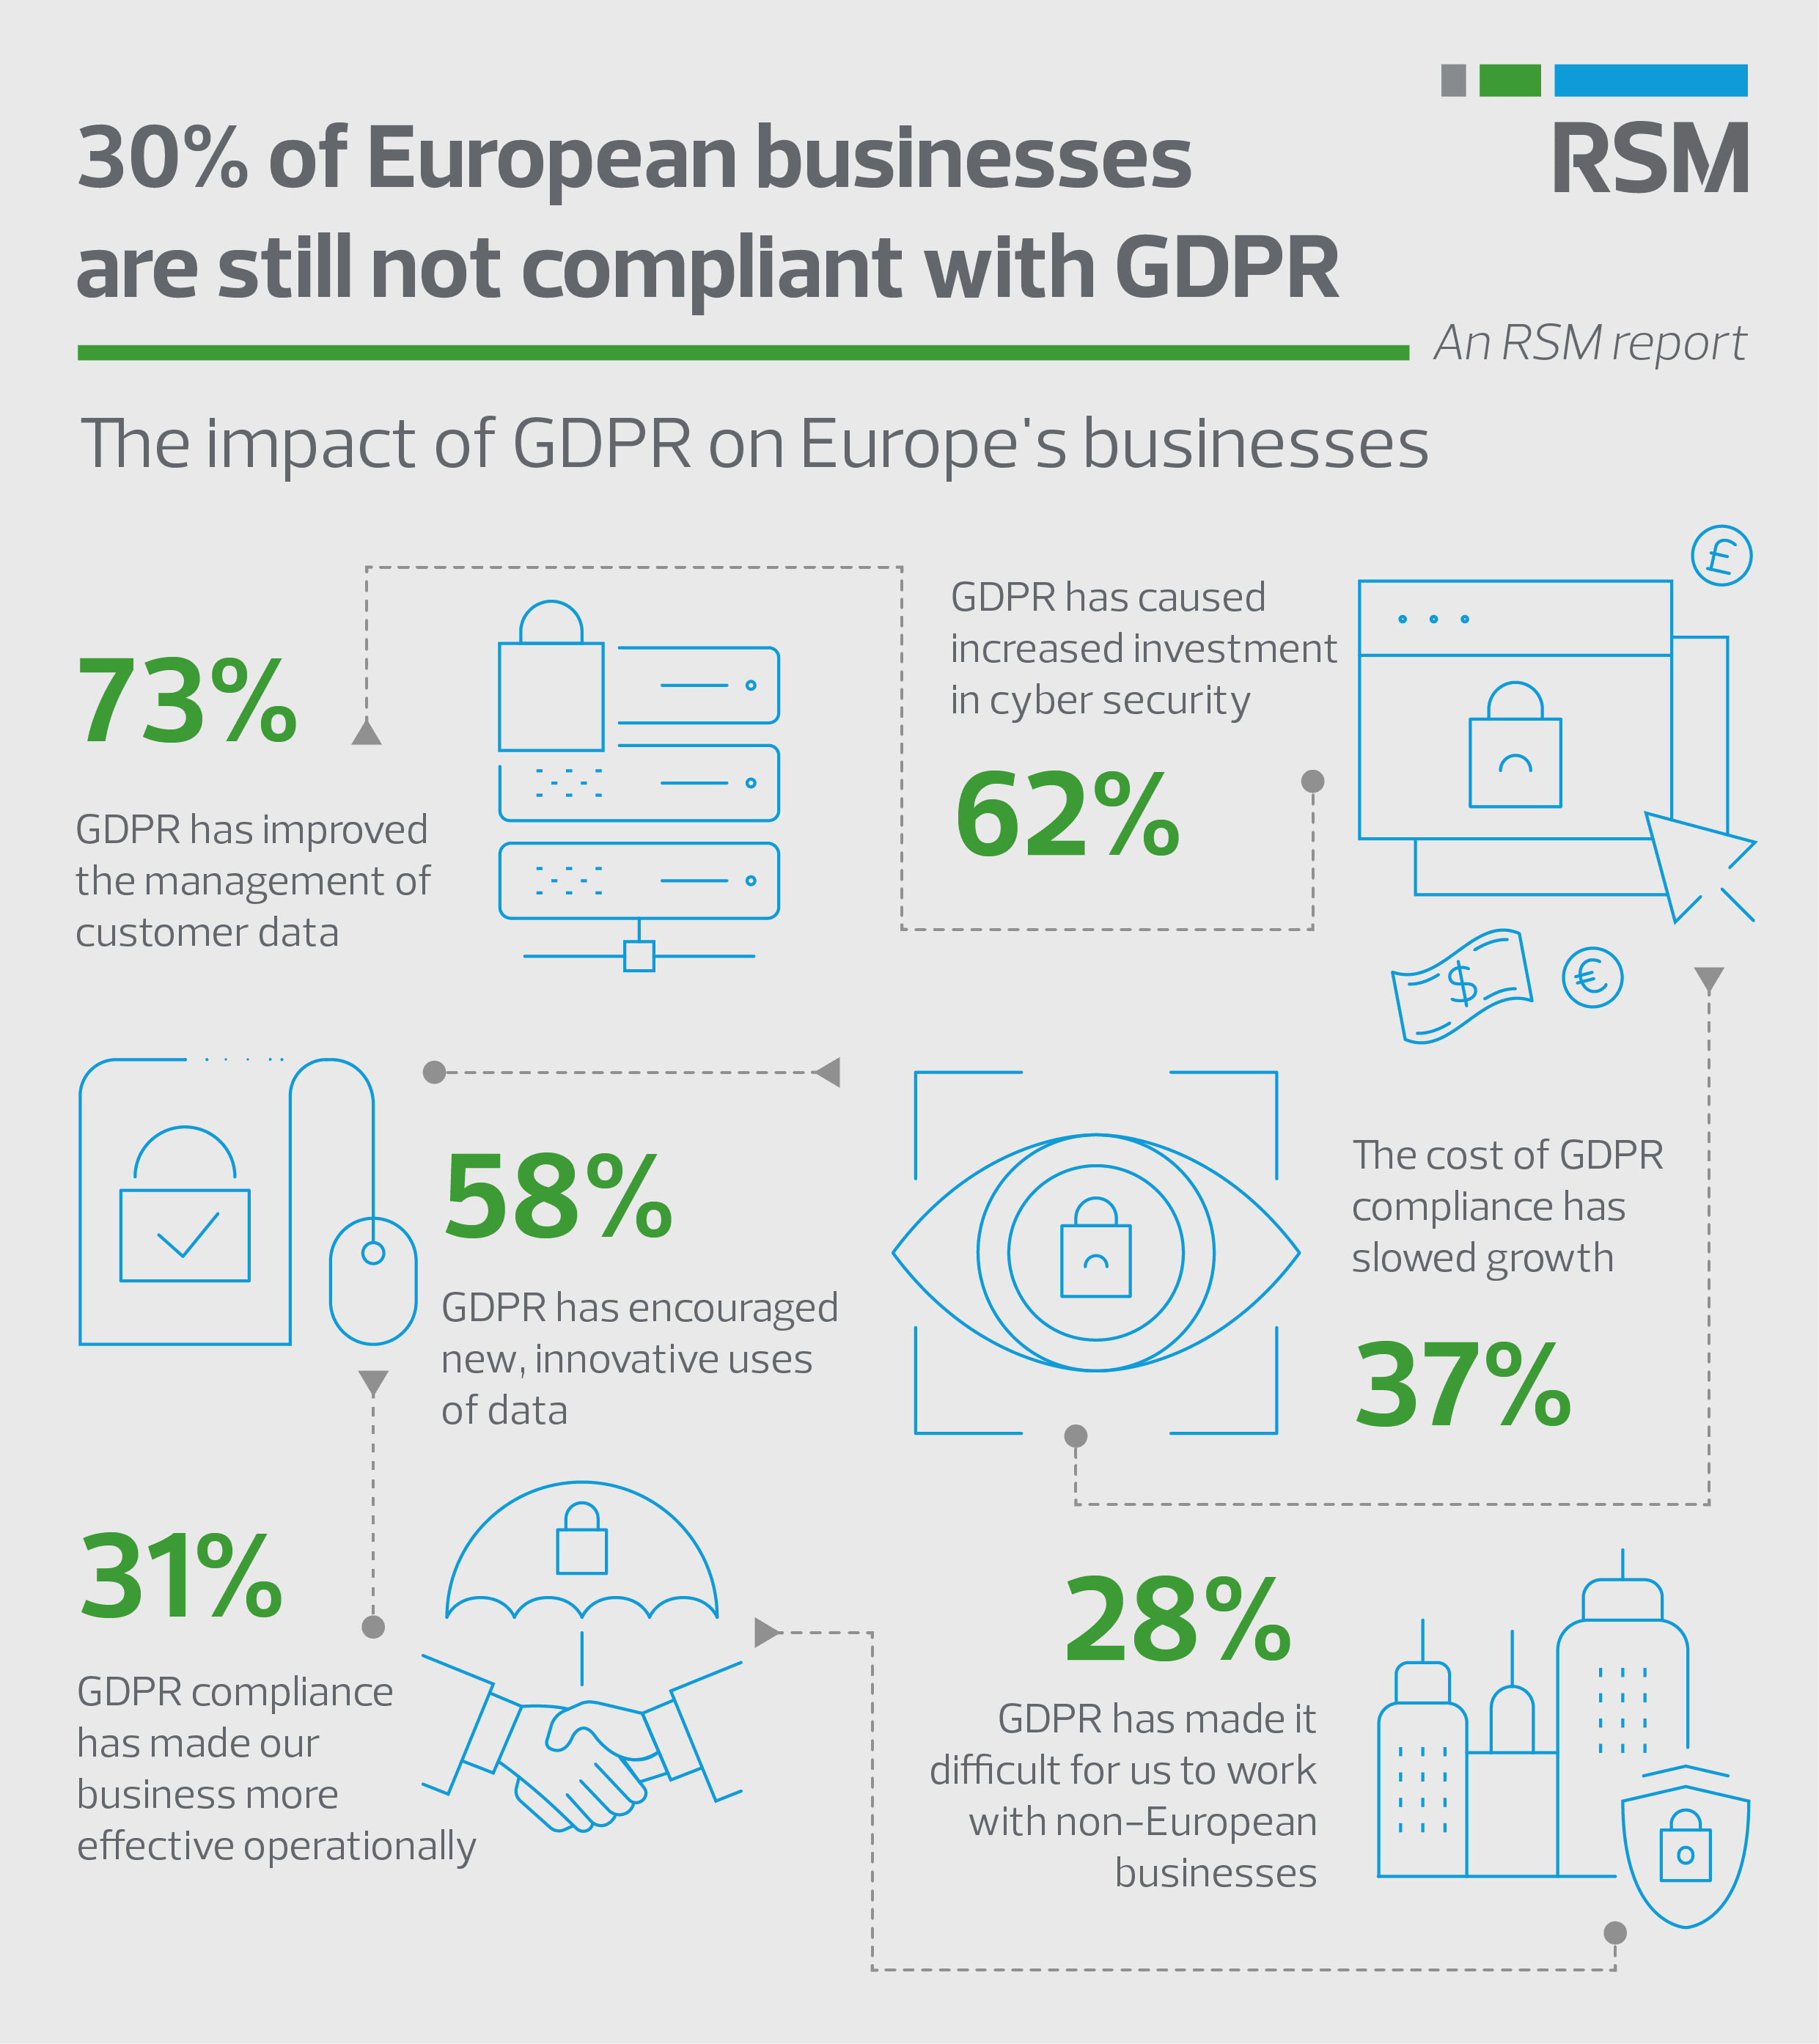 the_impact_of_gdpr_on_europes_businesses_infographic.png